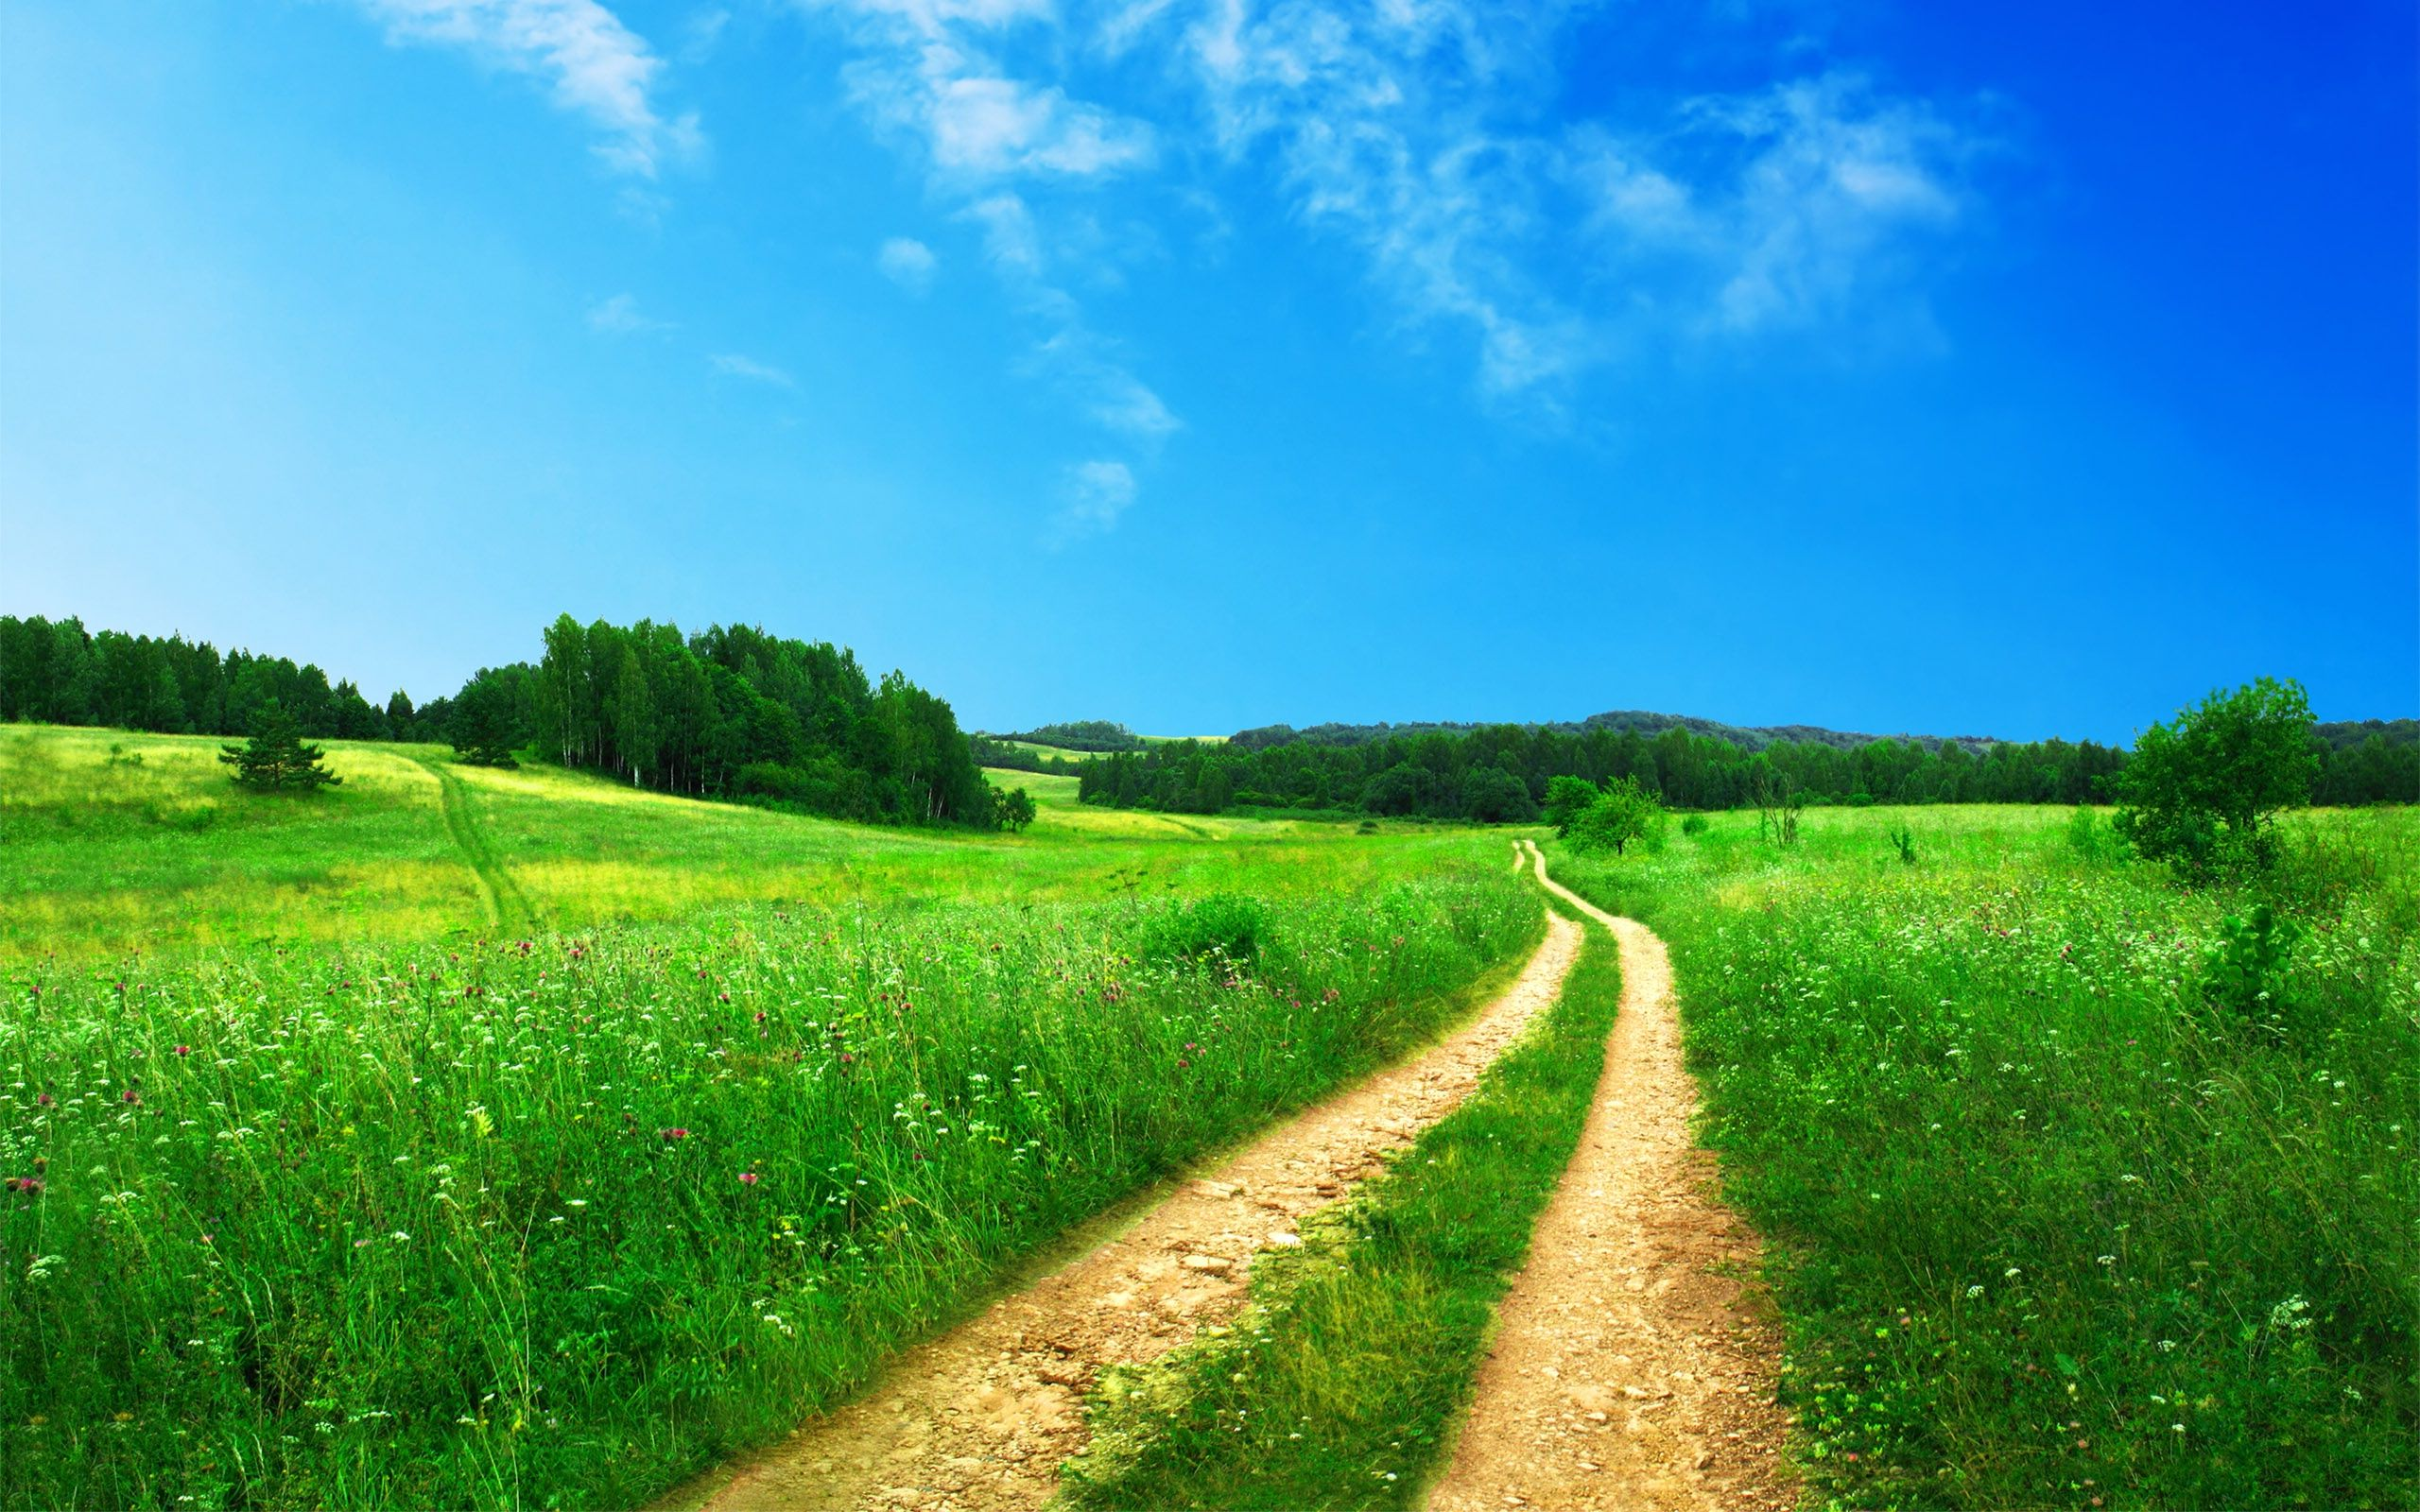 Landscape path wallpaper 2560x1600 27220 Pathway images